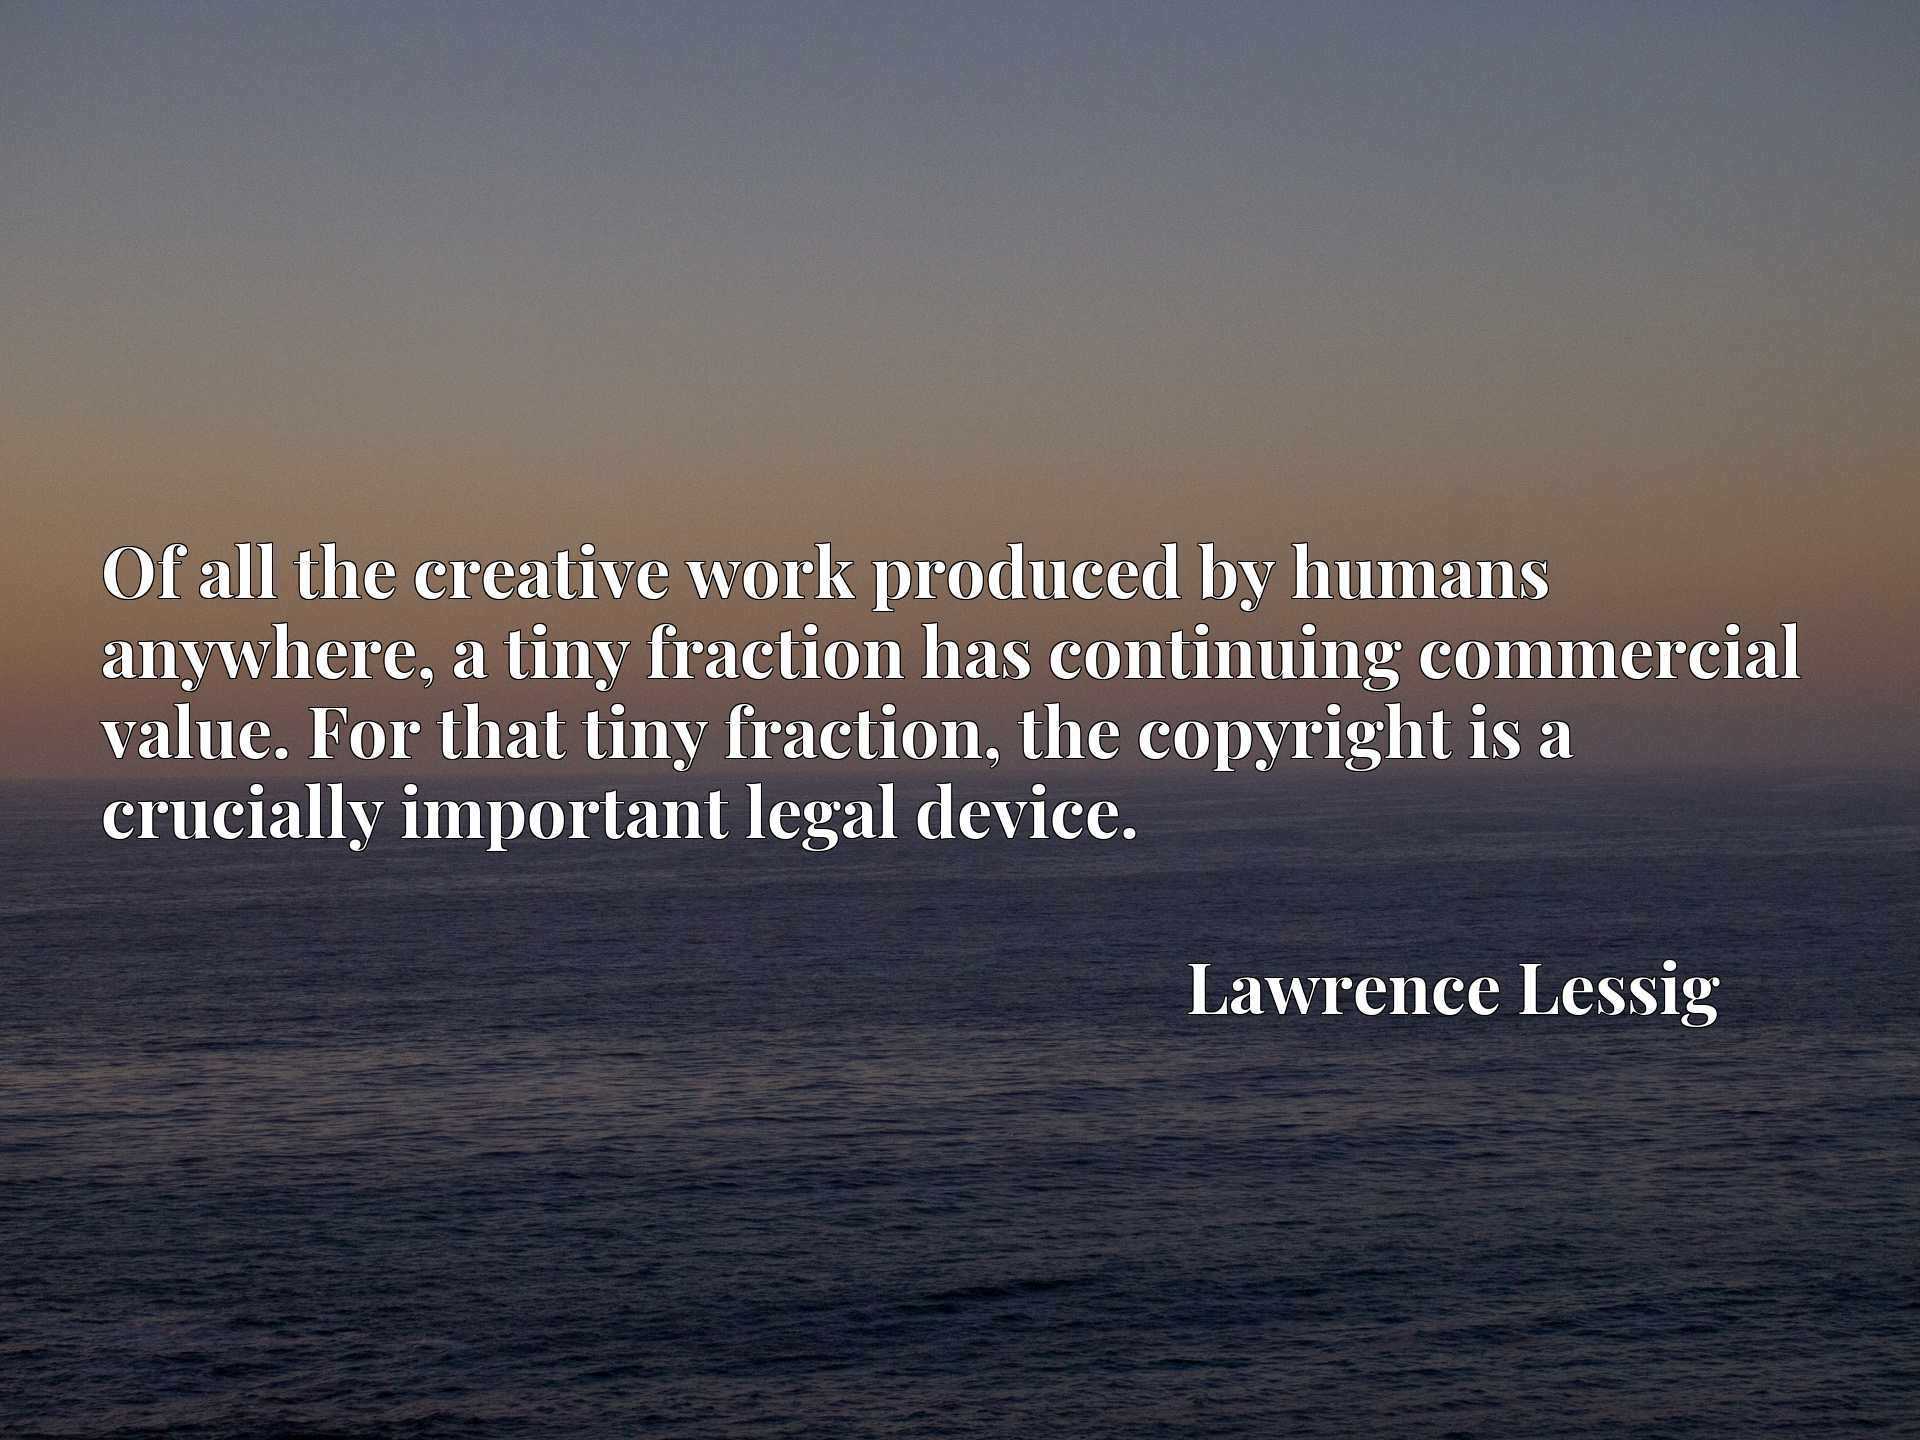 Quote Picture :Of all the creative work produced by humans anywhere, a tiny fraction has continuing commercial value. For that tiny fraction, the copyright is a crucially important legal device.